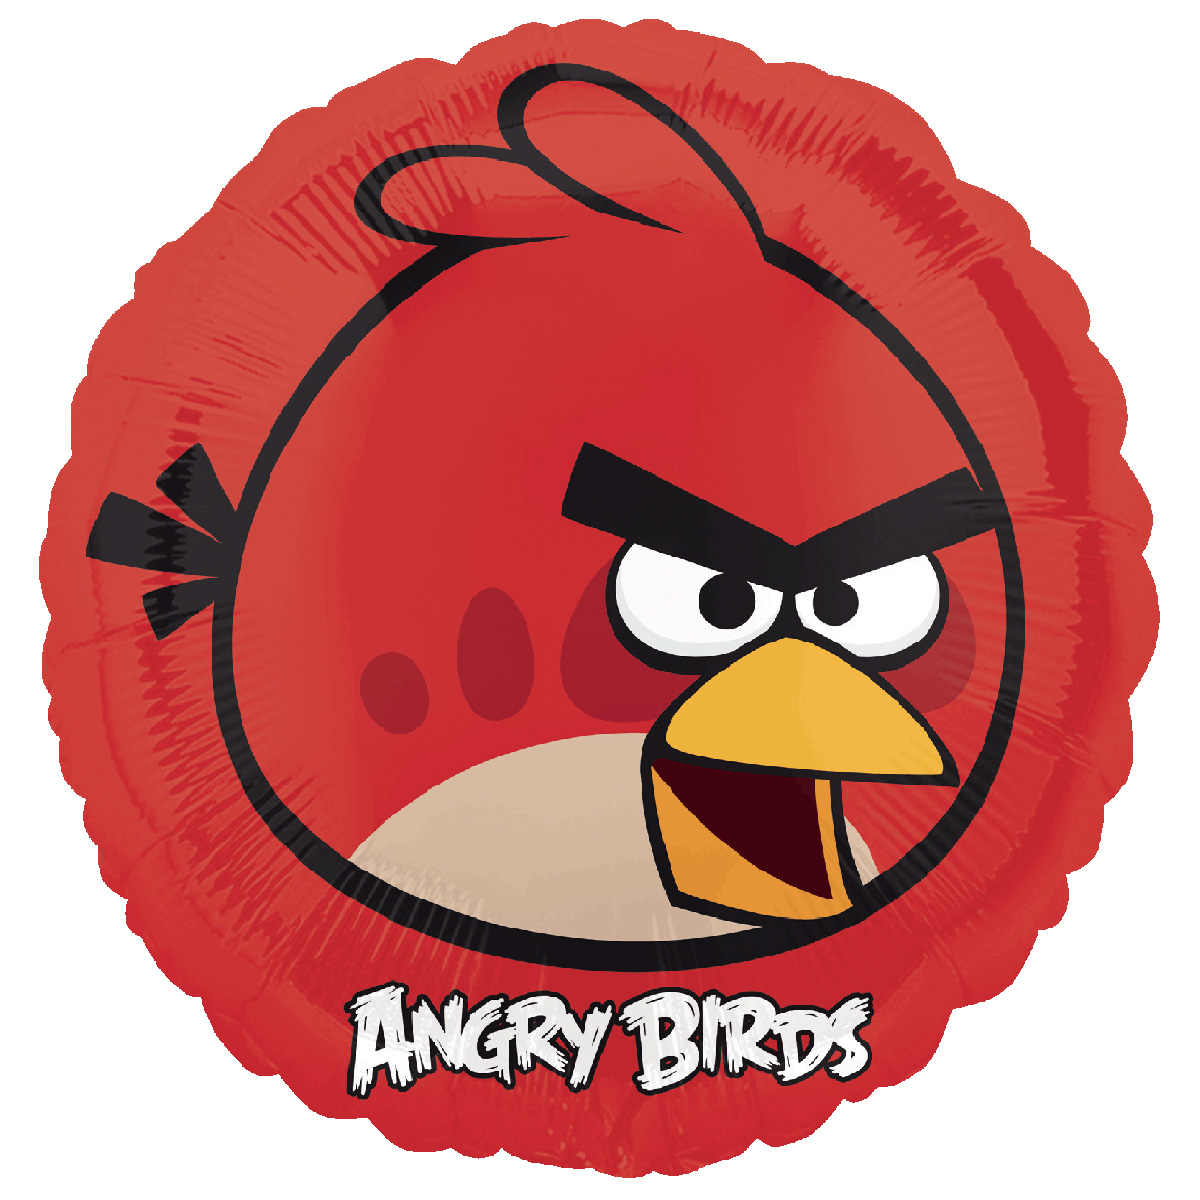 Ballon aluminium rouge angry birds d coration anniversaire et f tes th me sur vegaoo party - Angry birds rouge ...